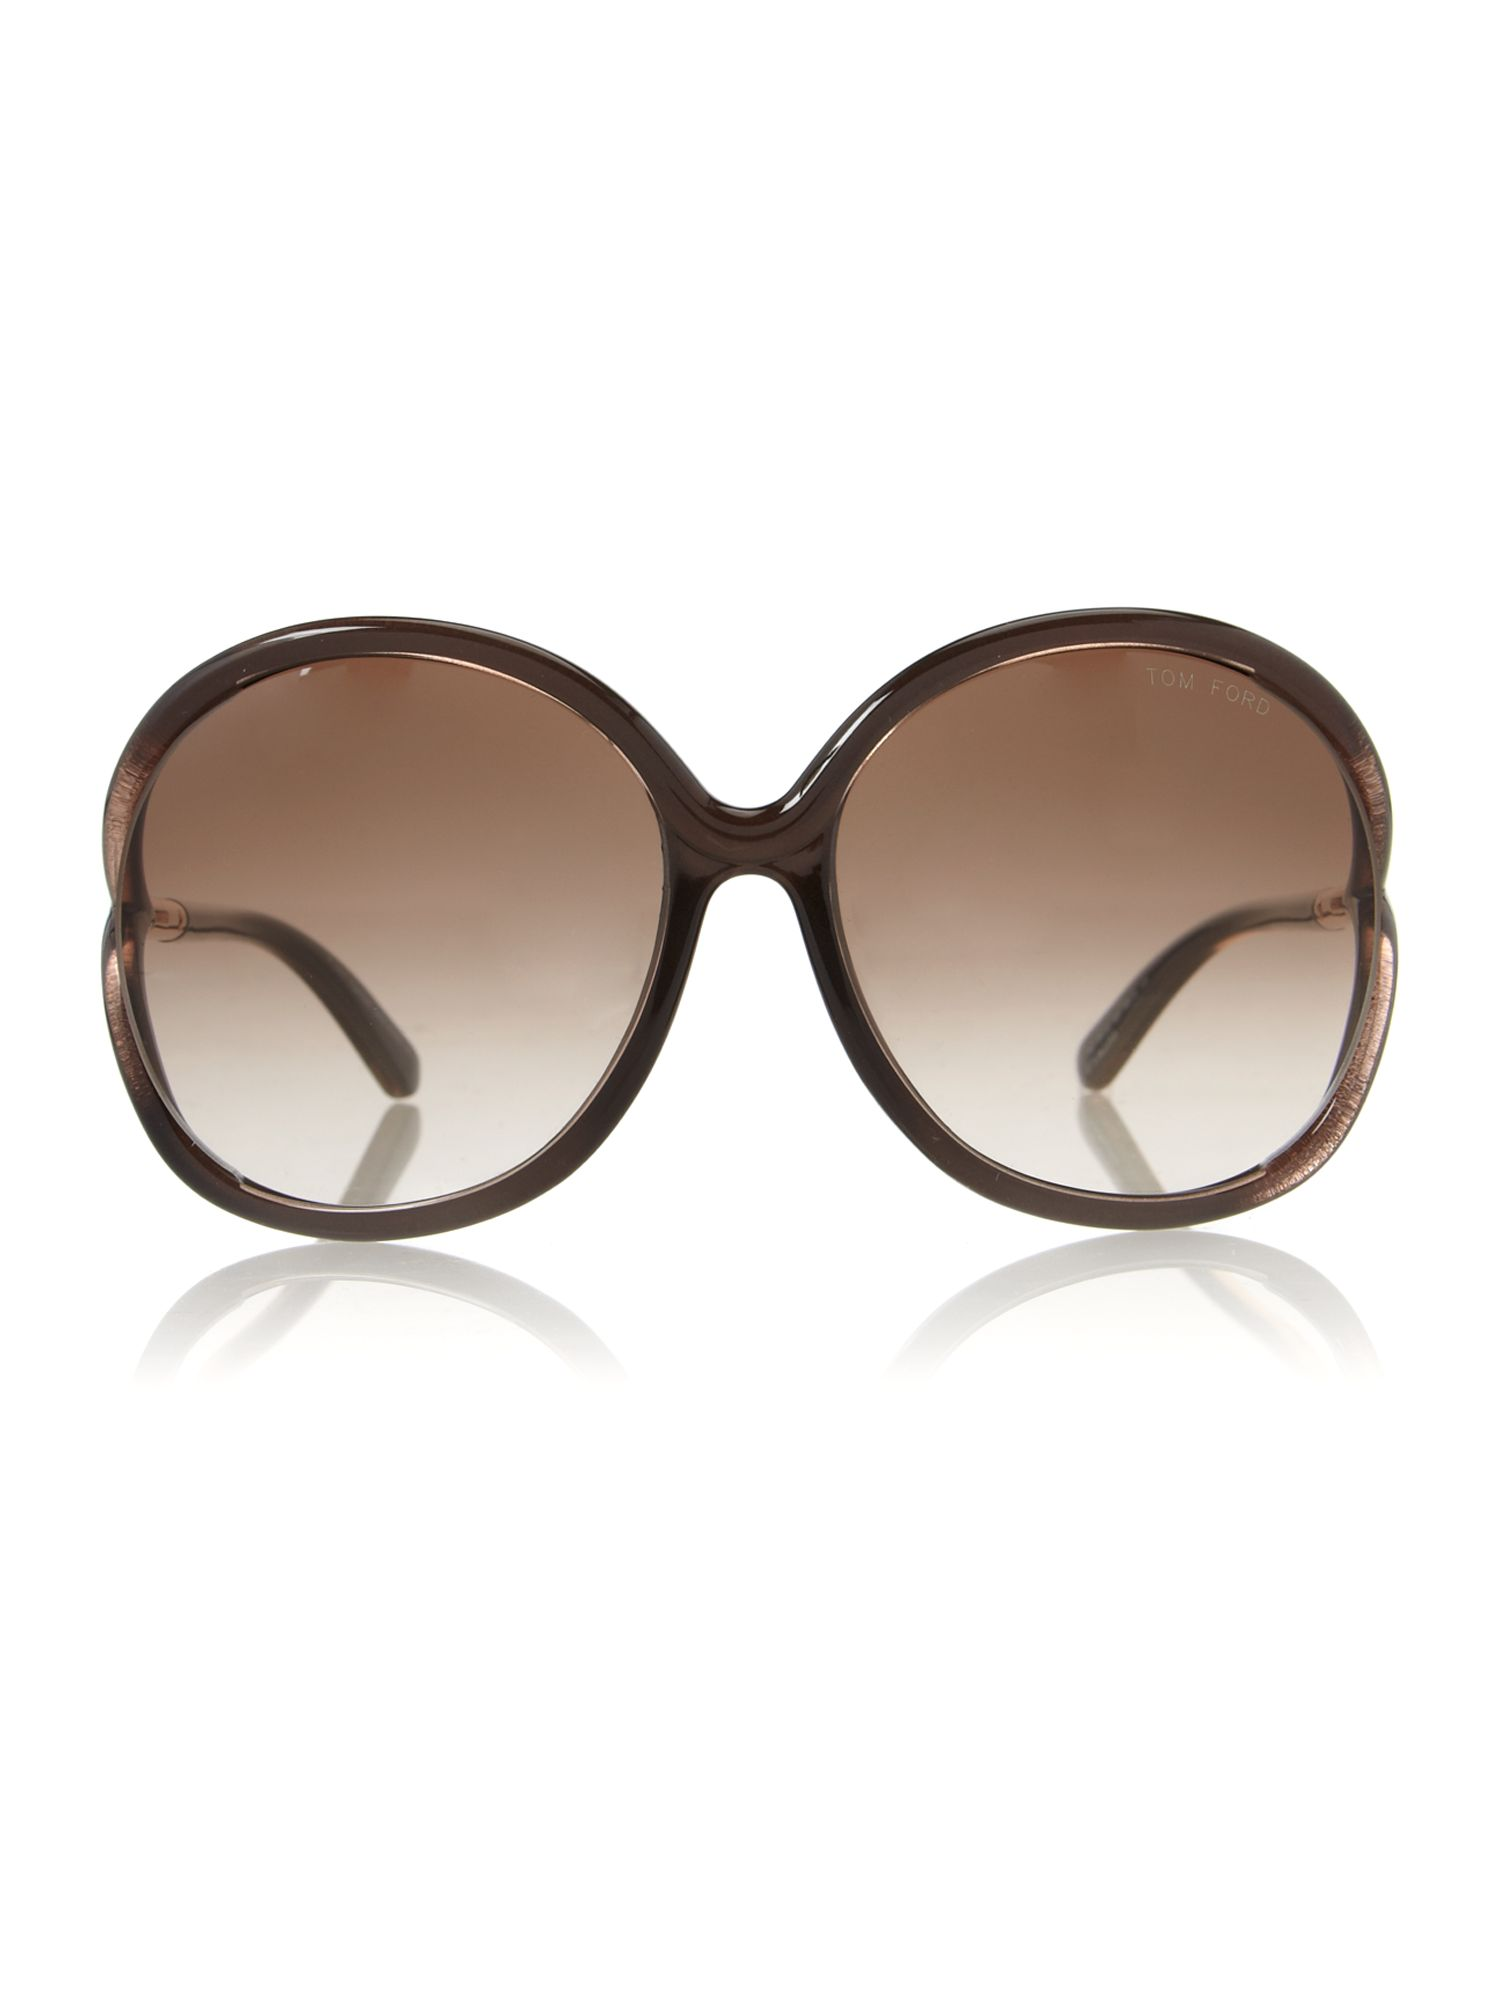 Ladies FT0252 Rhi Brown Sunglasses